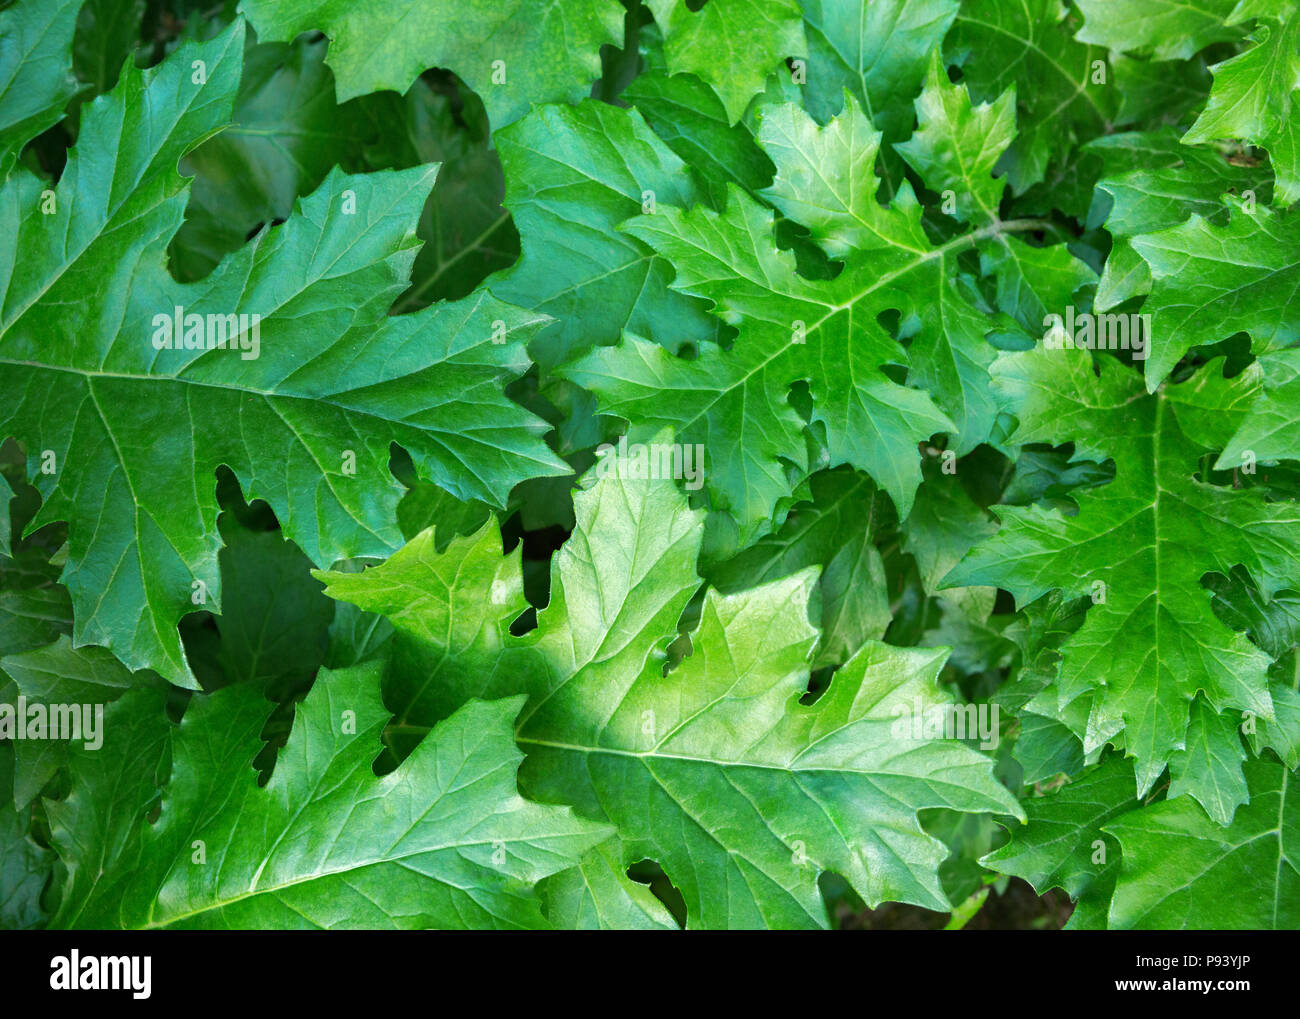 Green background with  Acanthus  leaves. - Stock Image